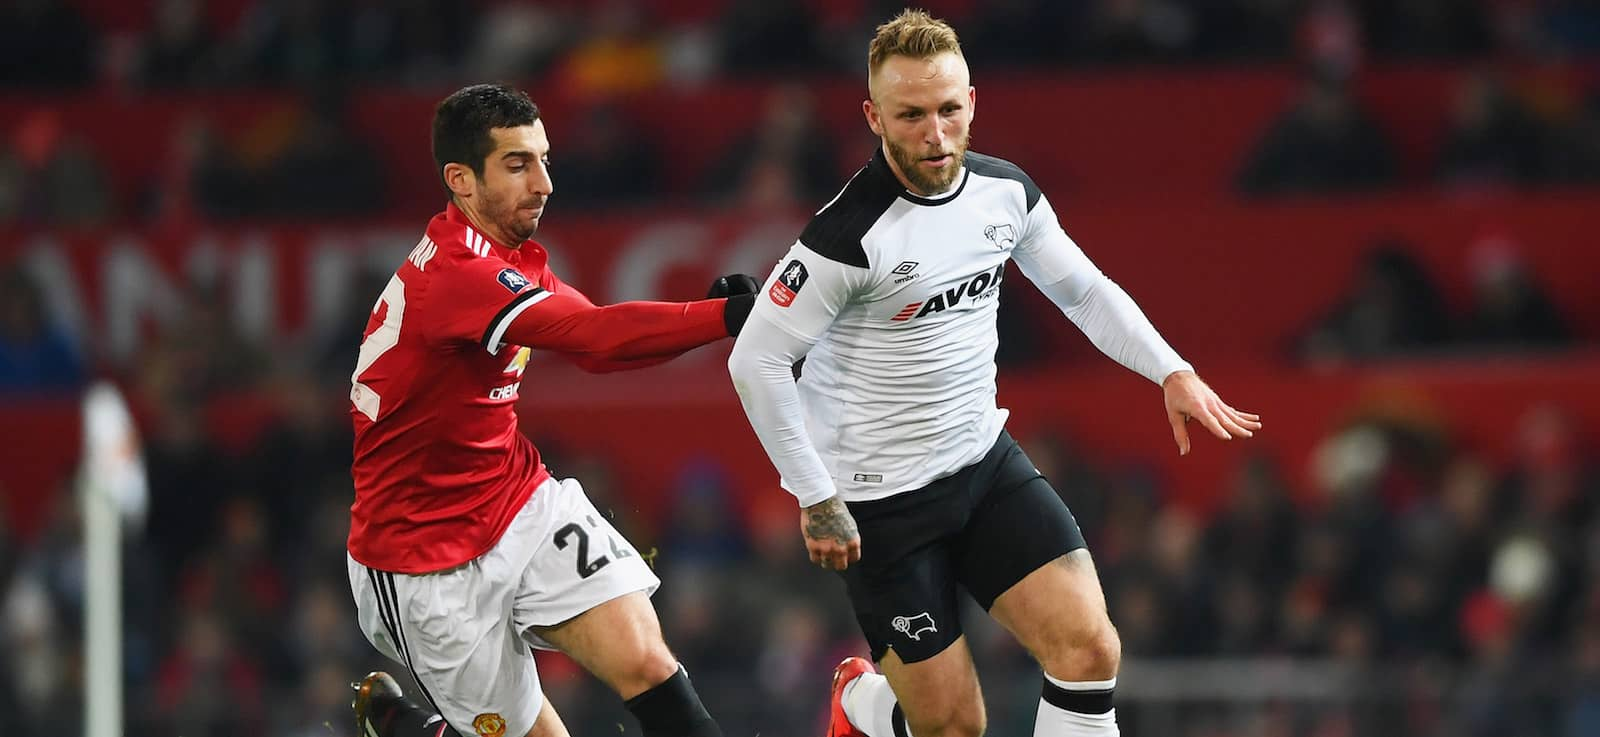 Tony Gale: Henrikh Mkhitaryan is not the type of player Manchester United want